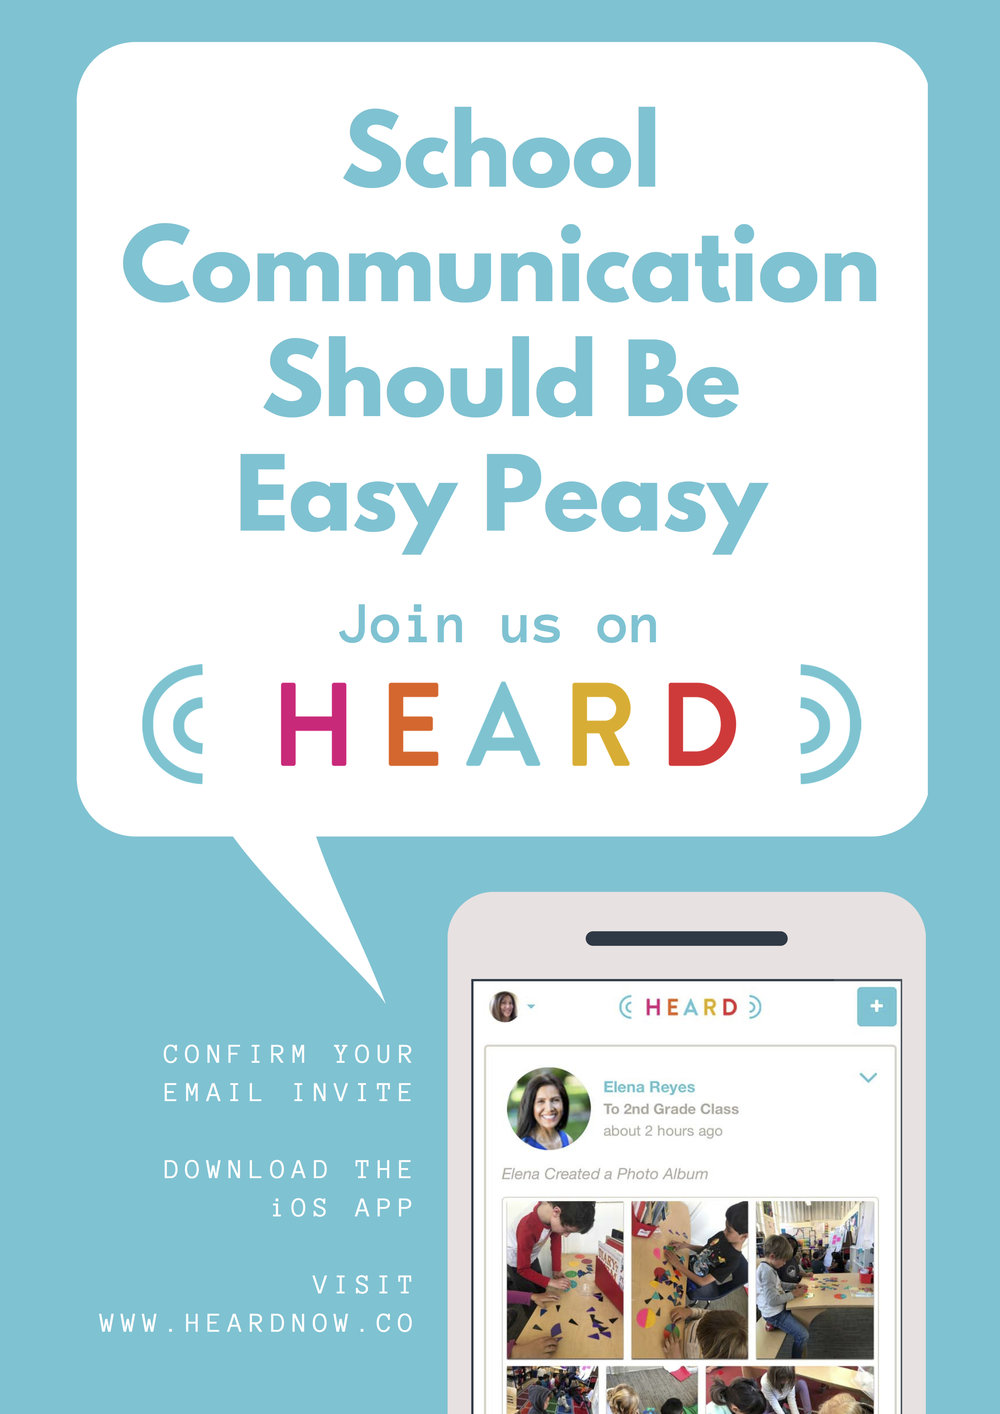 HEARD is a parent teacher communication app; HEARD school communication tool; HEARD school communication platform